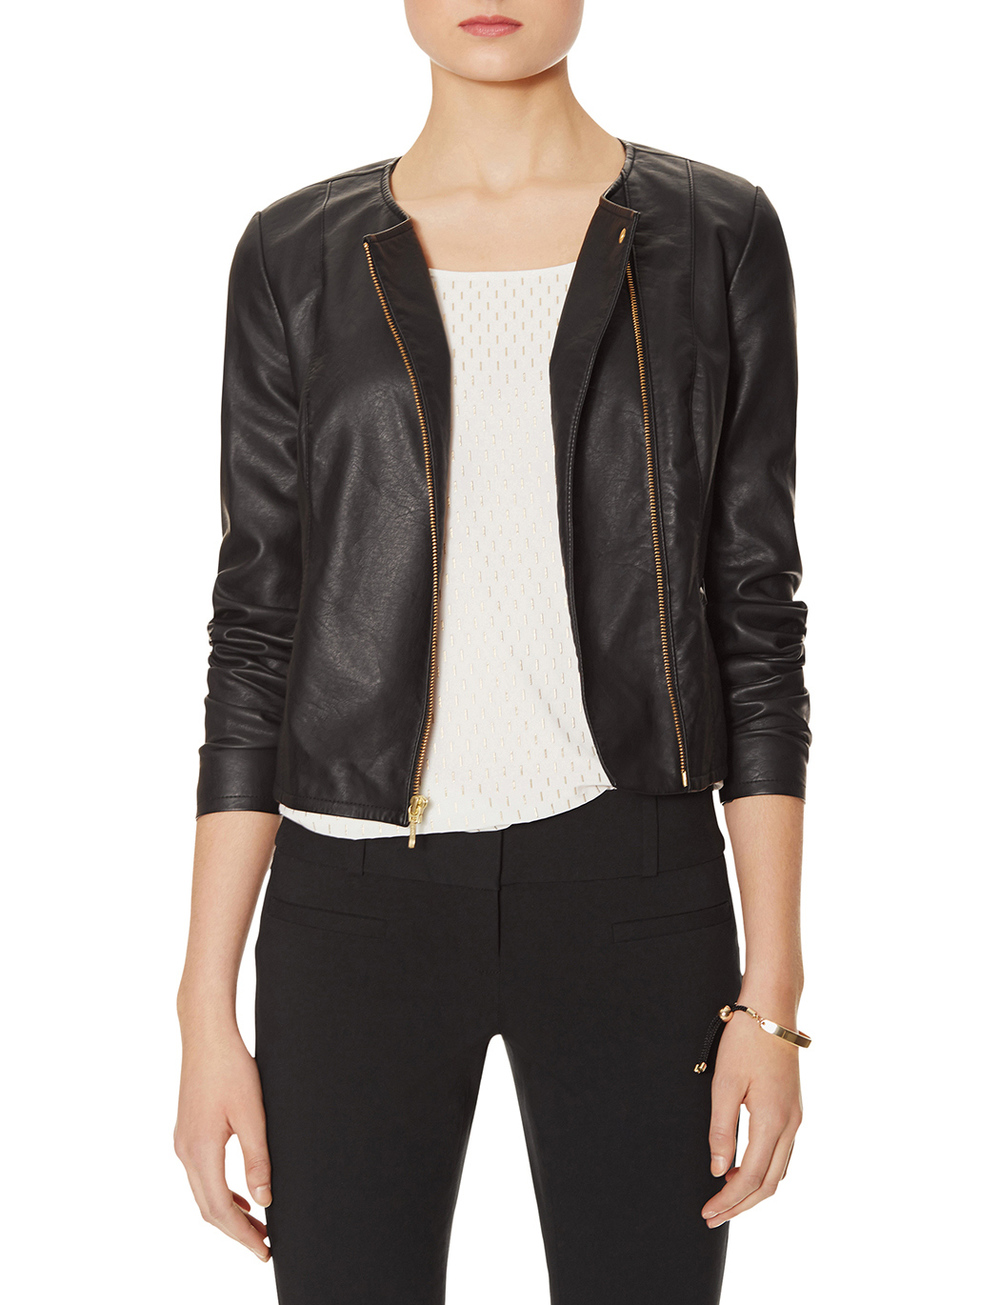 Asymmetrical moto jacket. The Limited. $128. ***Jackets are an extra 60% off right now. Code: WARMUP.***